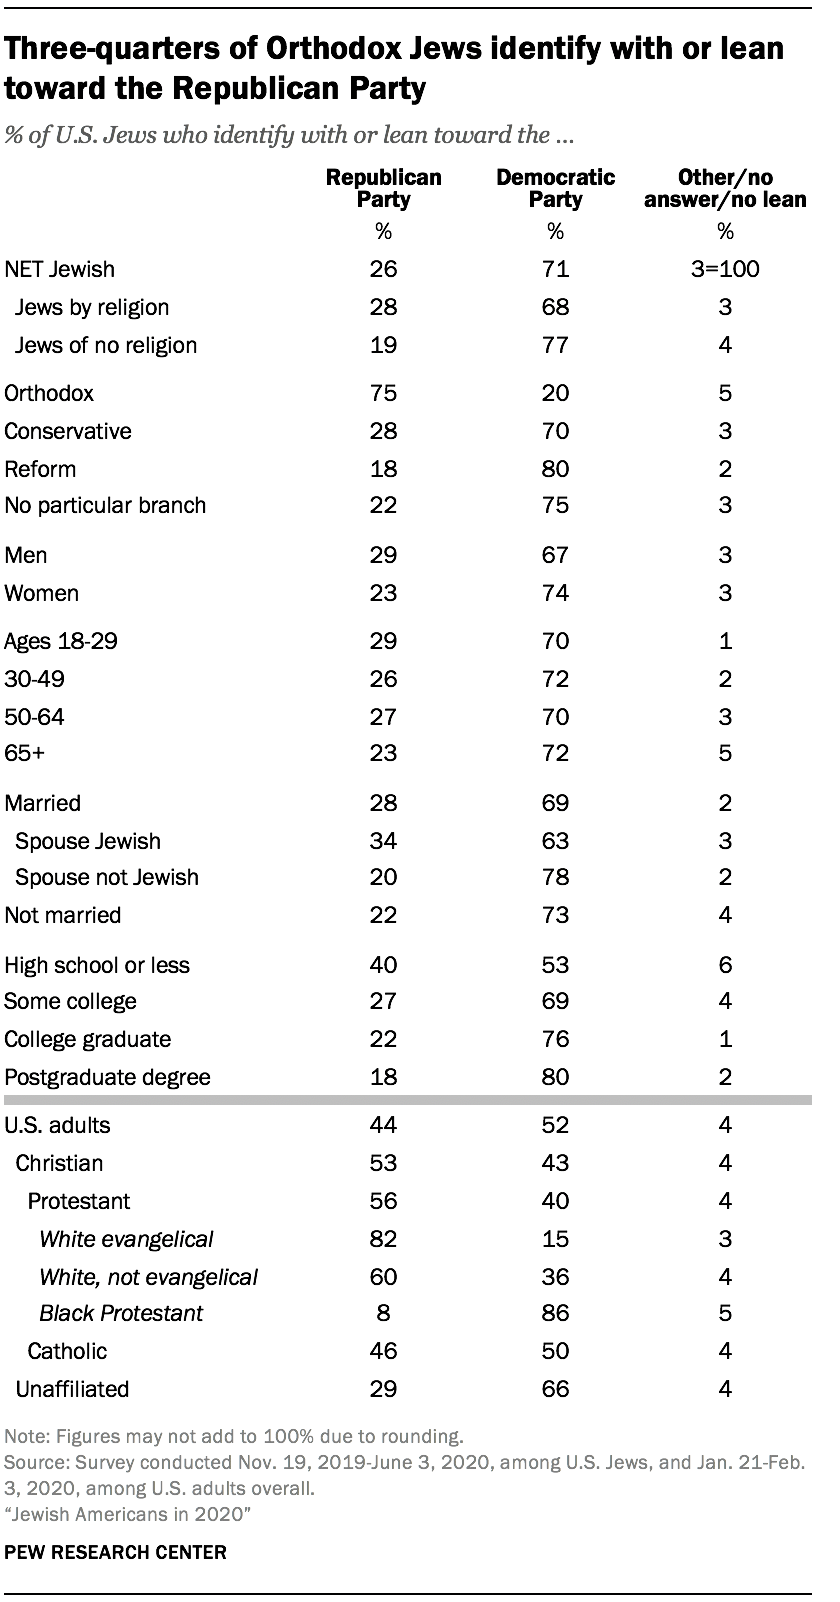 Three-quarters of Orthodox Jews identify with or lean toward the Republican Party